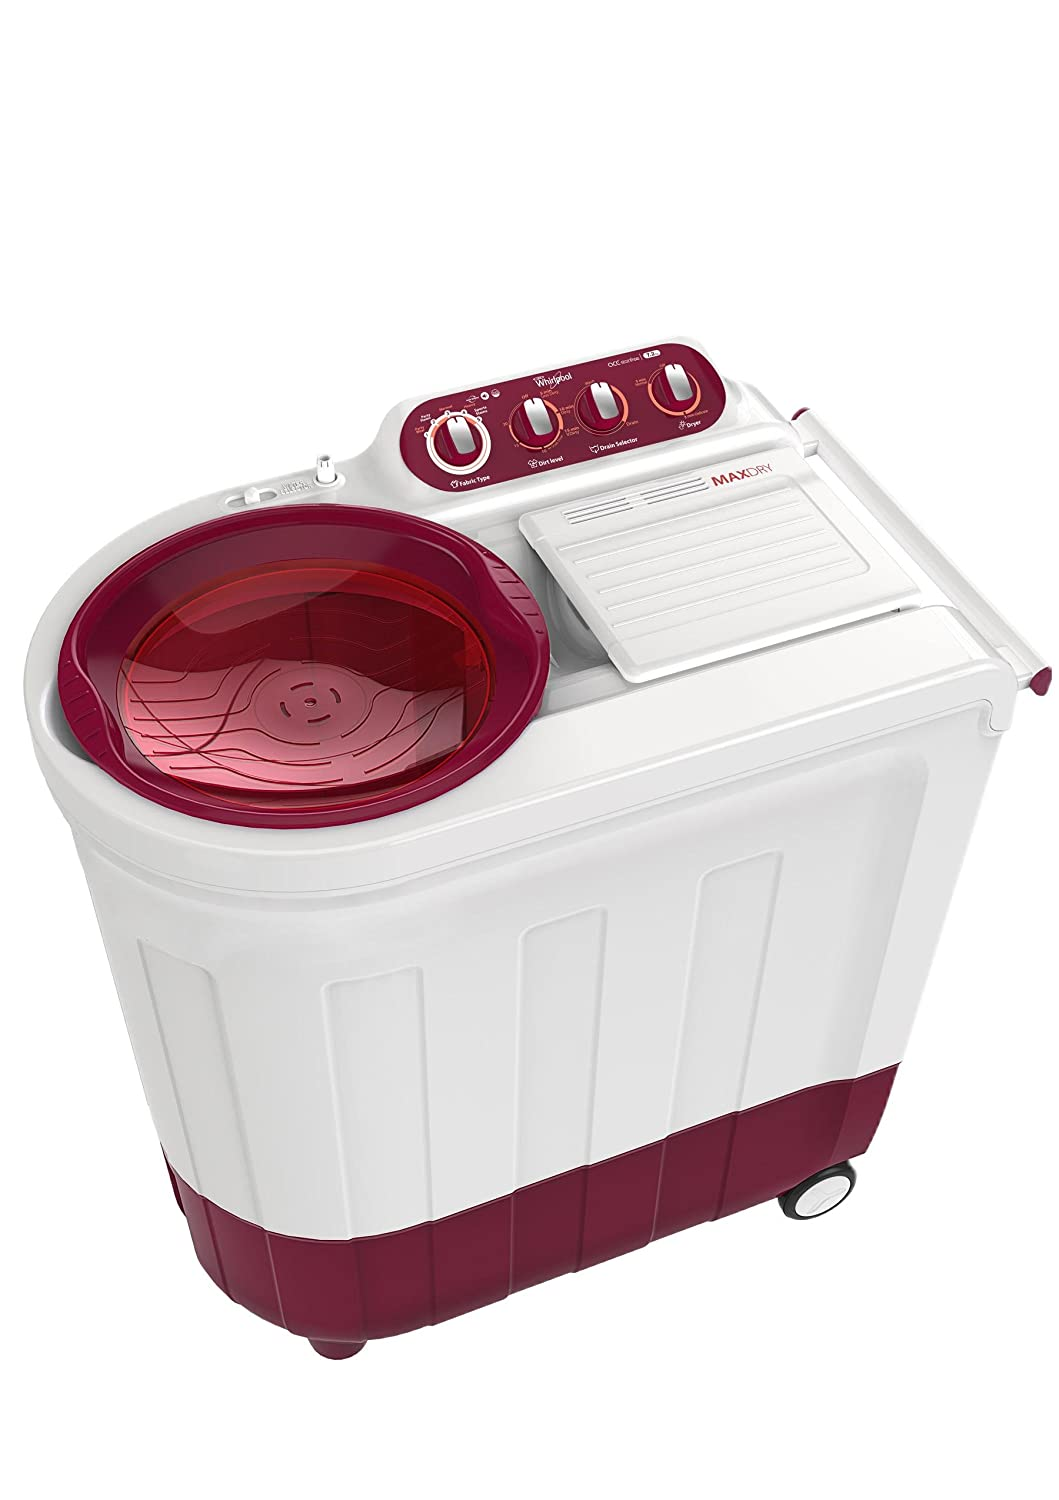 Whirlpool 8 kg Semi-Automatic Top Loading Washing Machine (ACE 8.0 TURBODRY, Coral Red)